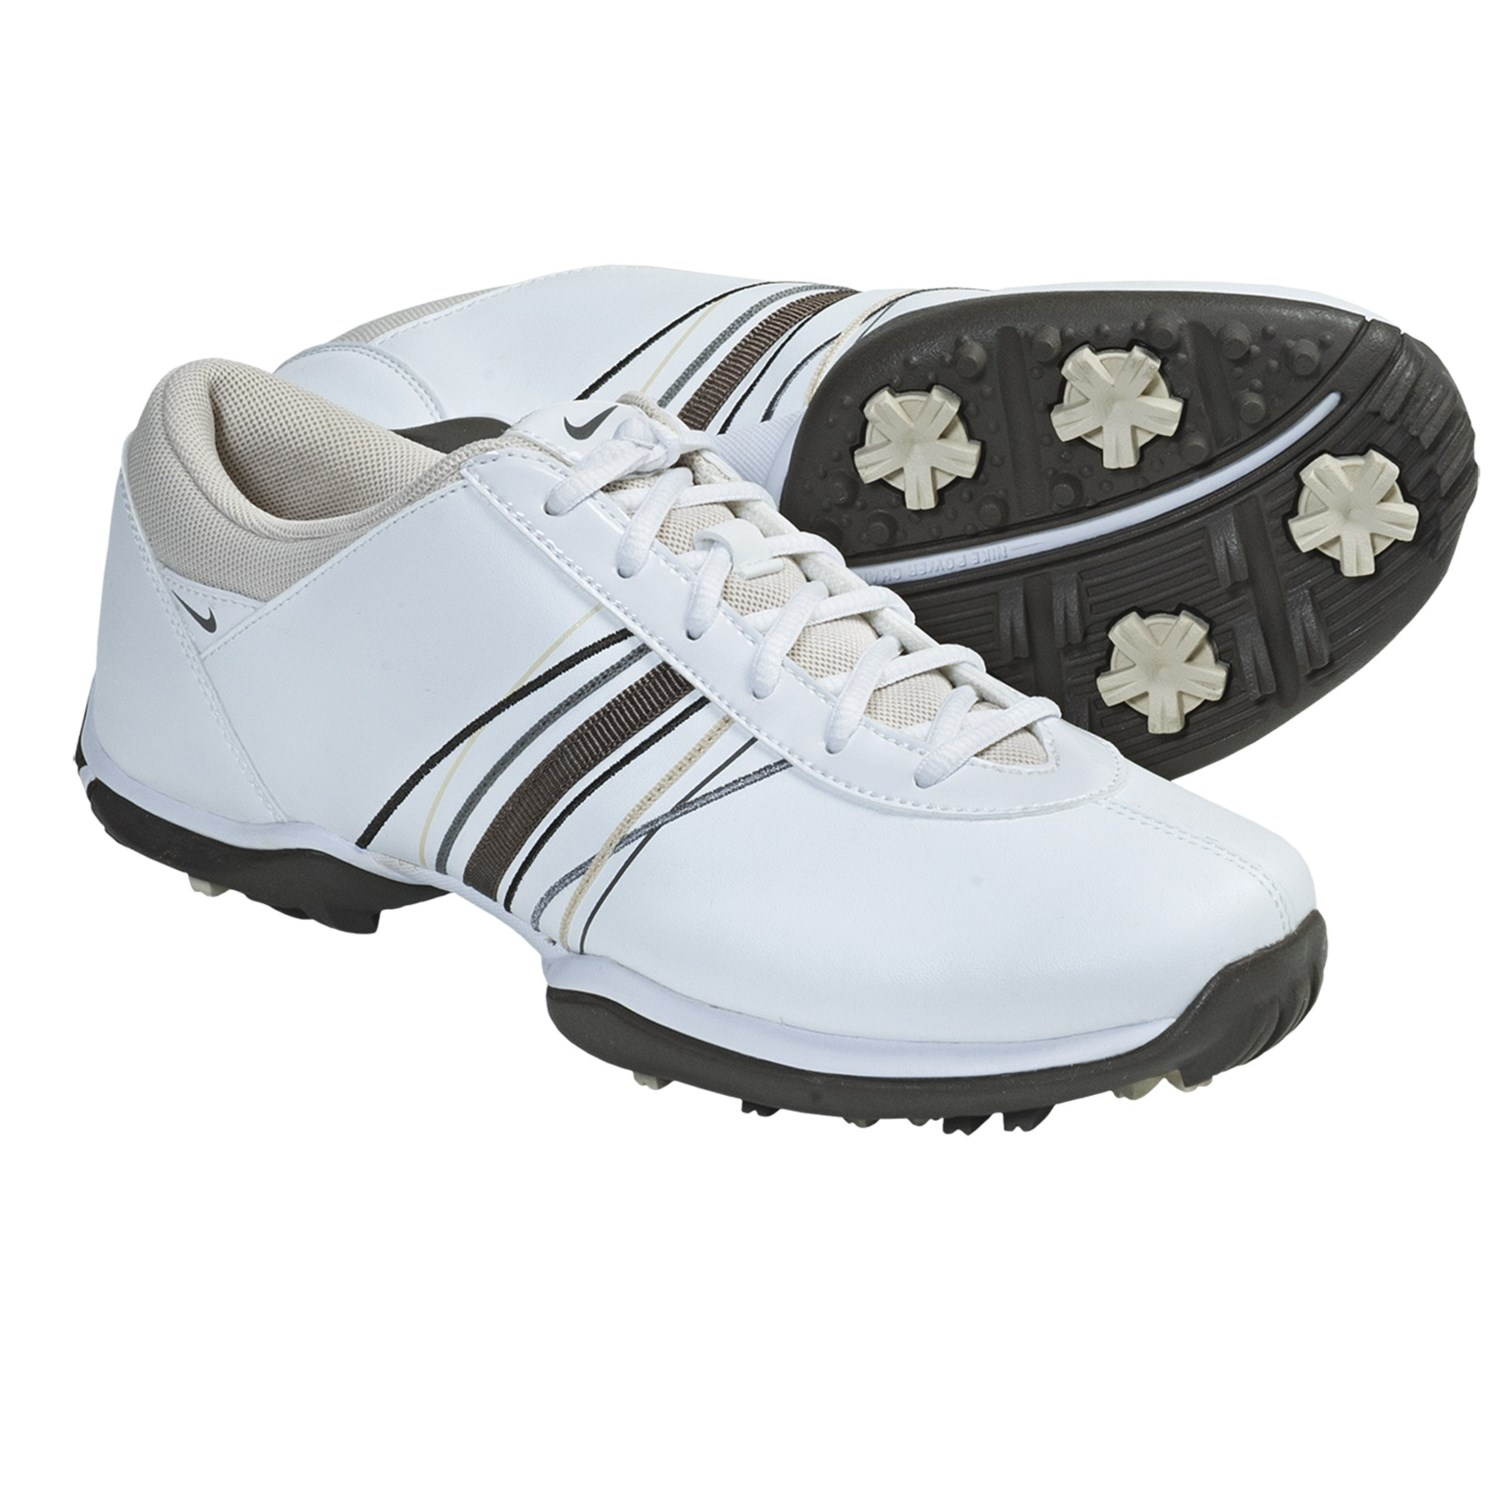 Nike Golf Delight Golf Shoes (For Women) in White/Smoke Birch